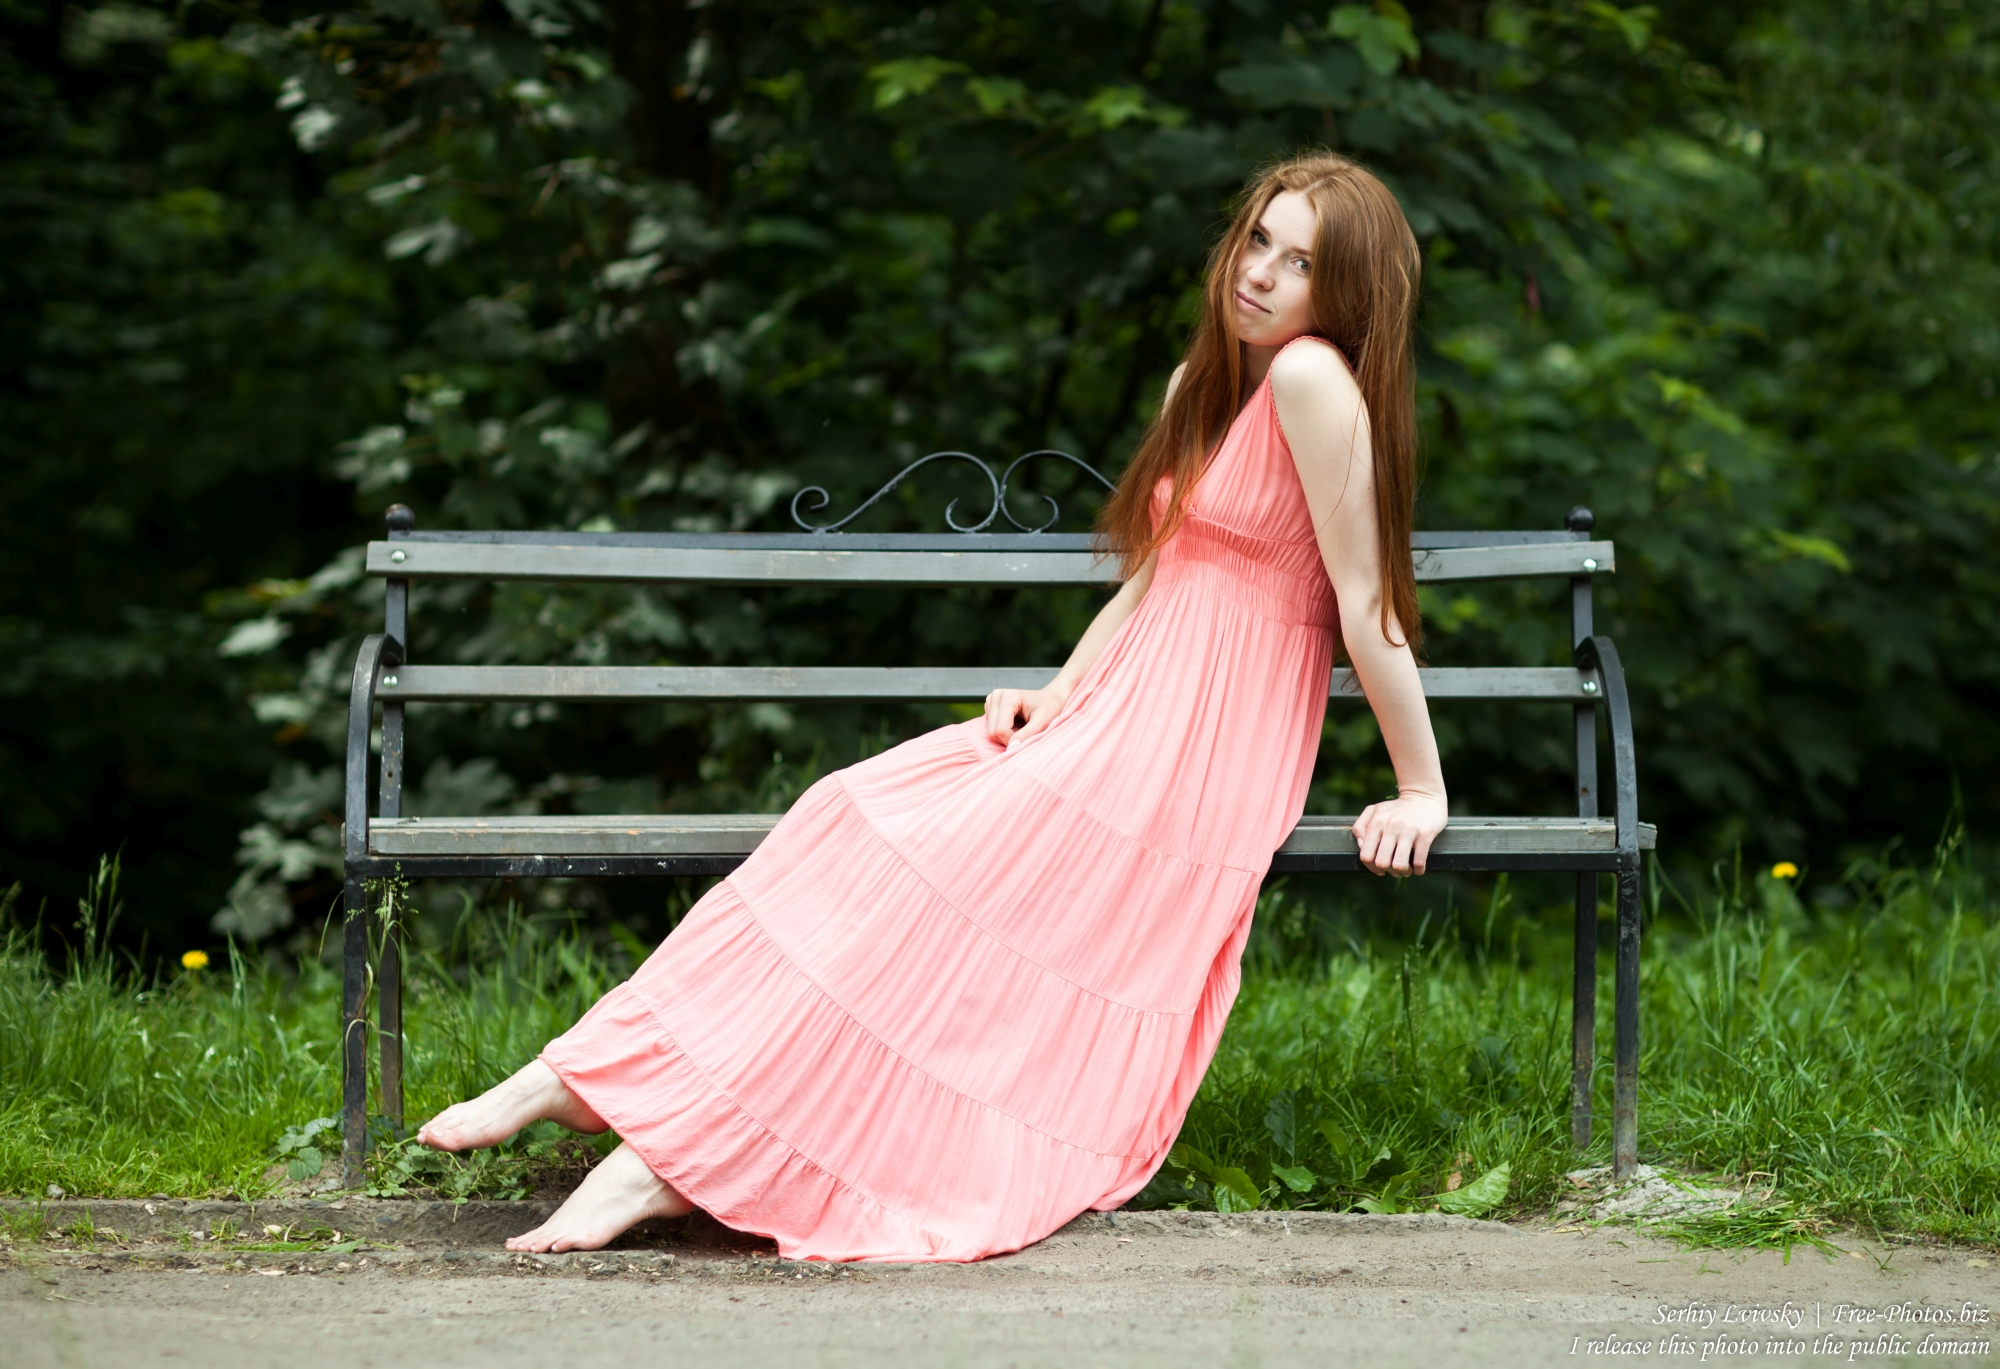 yana_a_23-year-old_girl_with_natural_red_hair_photographed_in_june_2017_by_serhiy_lvivsky_10